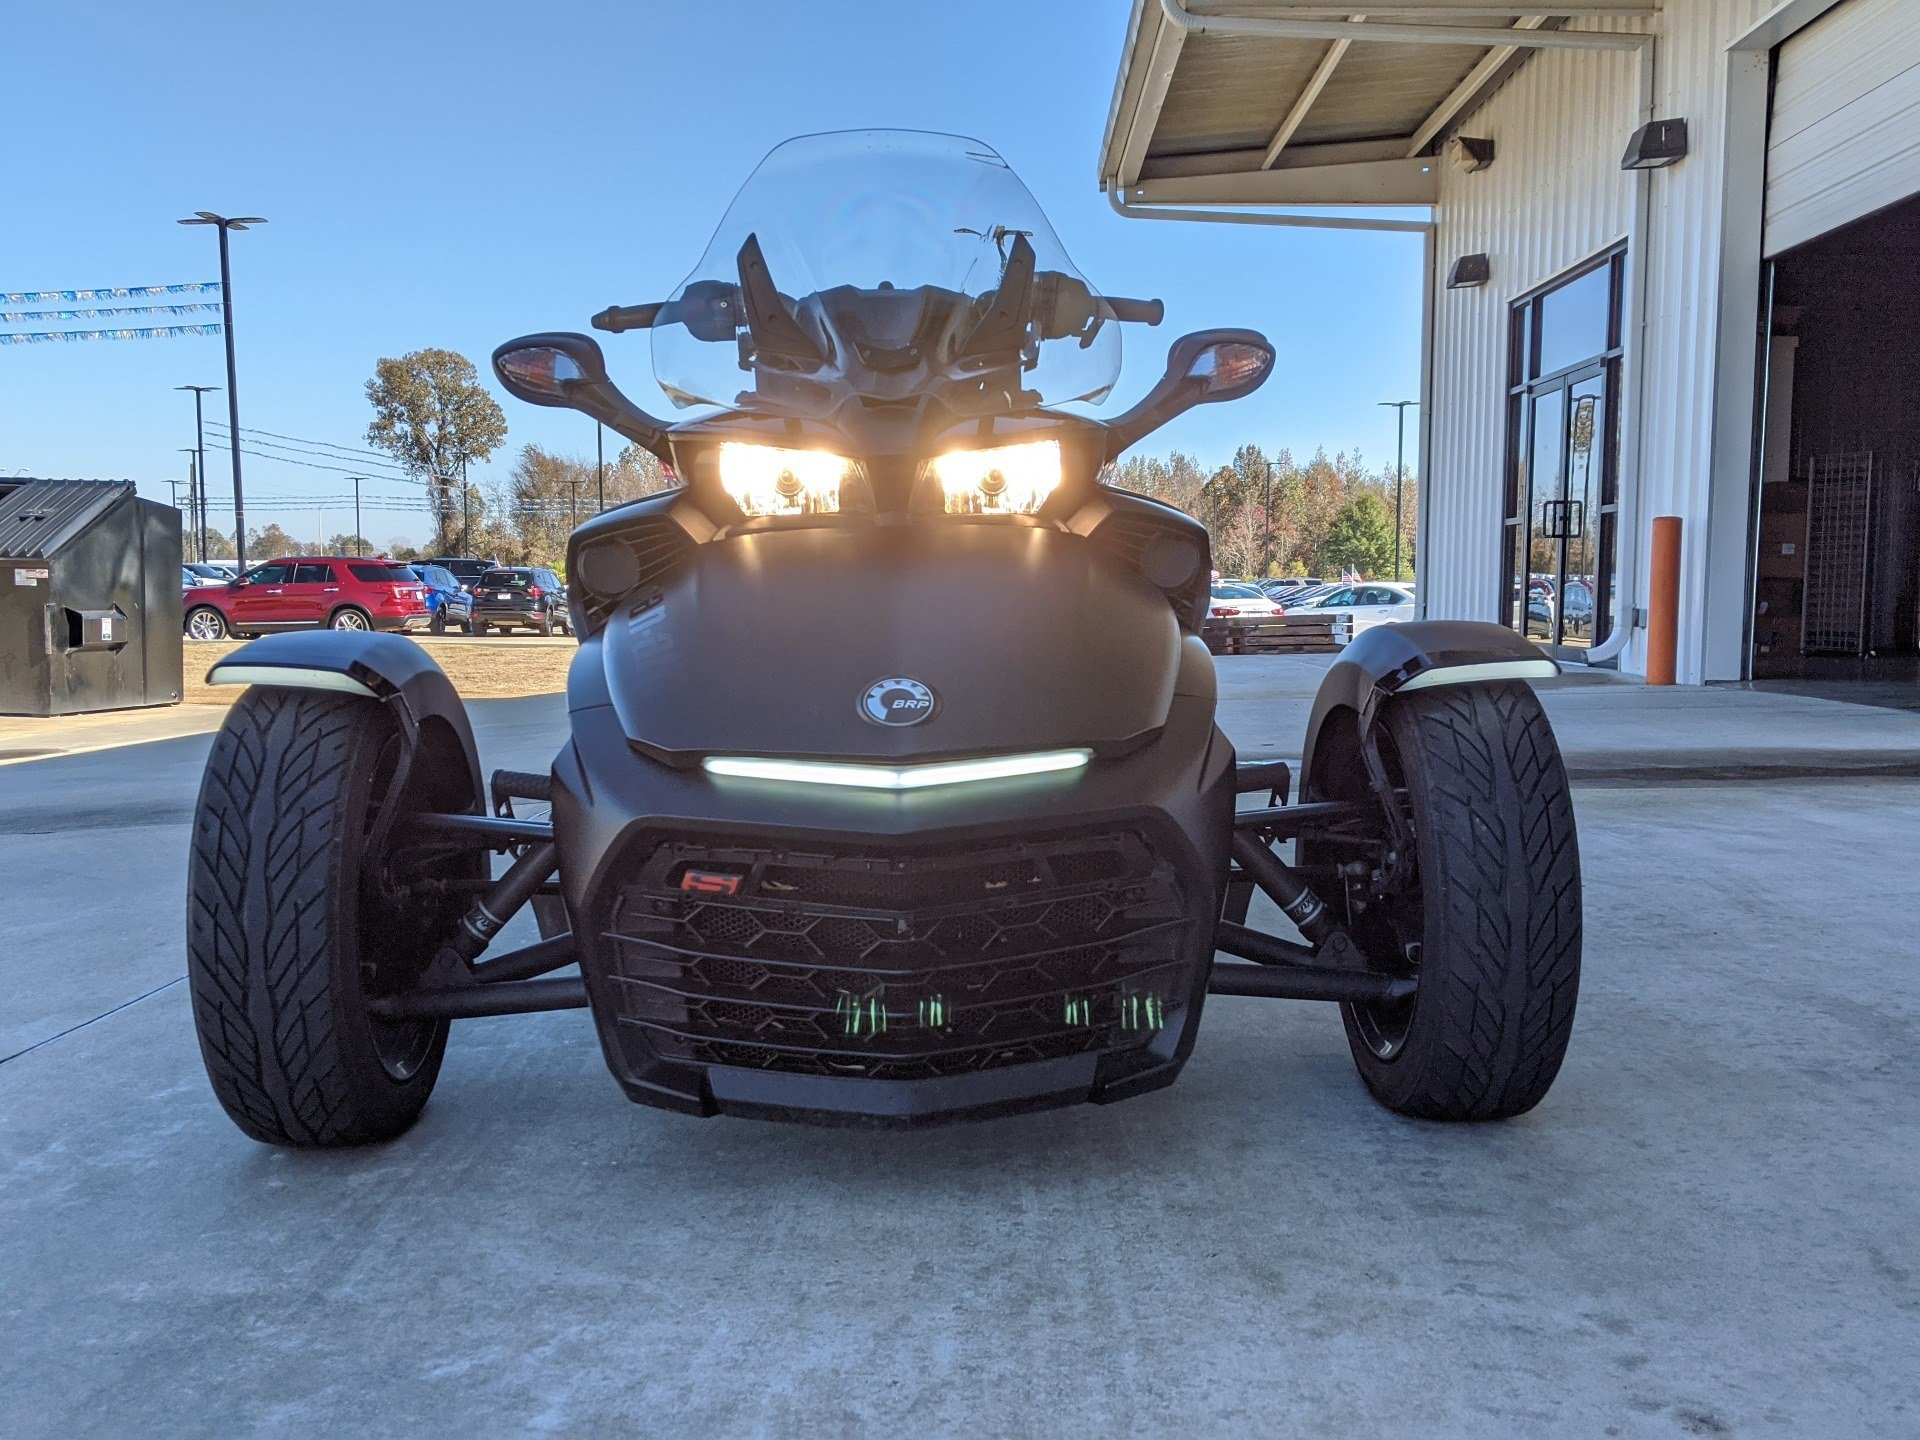 2016 Can-Am Spyder F3 Limited in Monroe, Louisiana - Photo 10